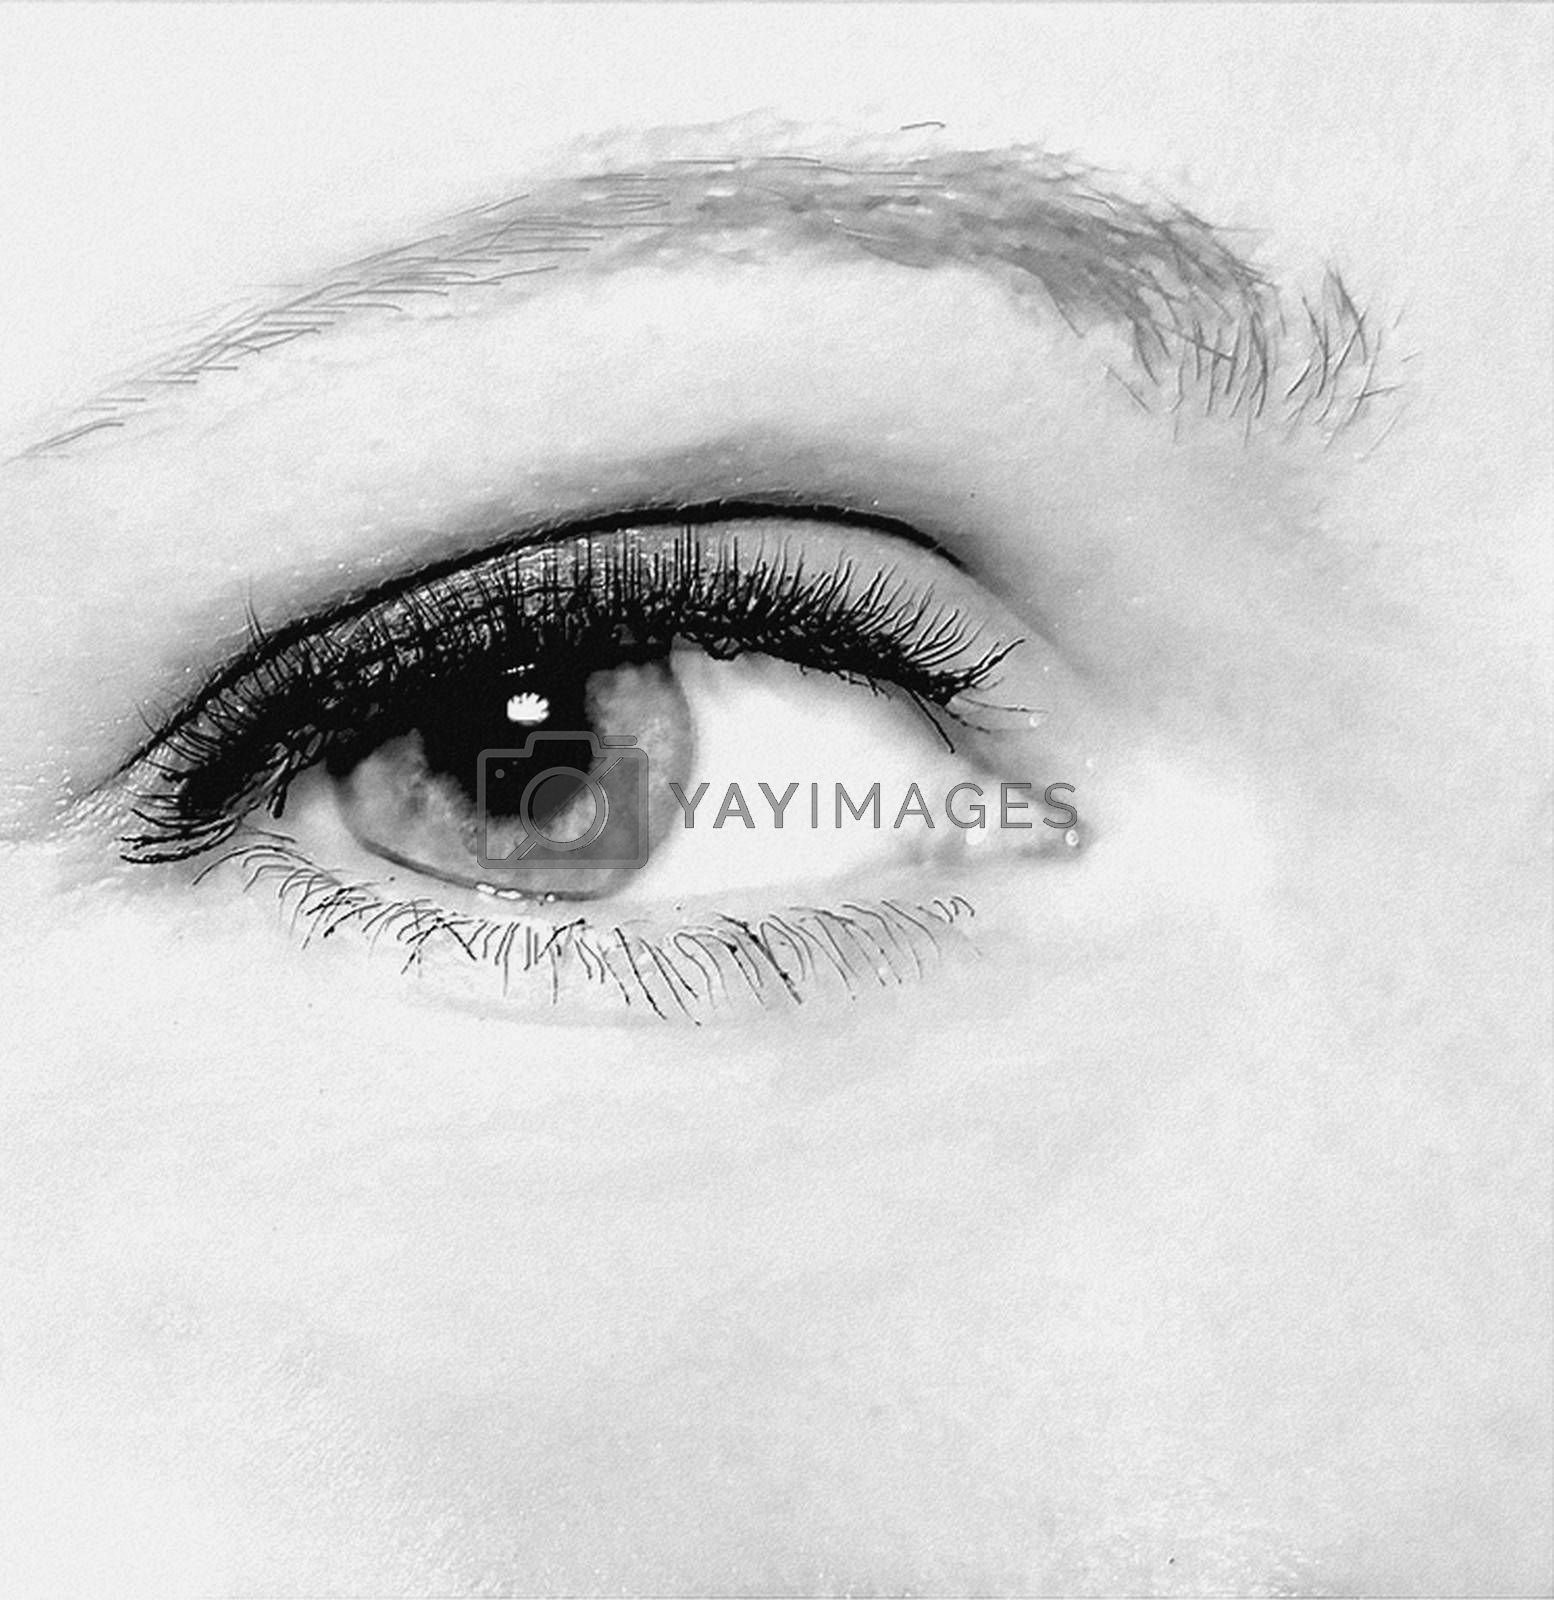 Royalty free image of Close-up of a beautiful woman's eye by balage941